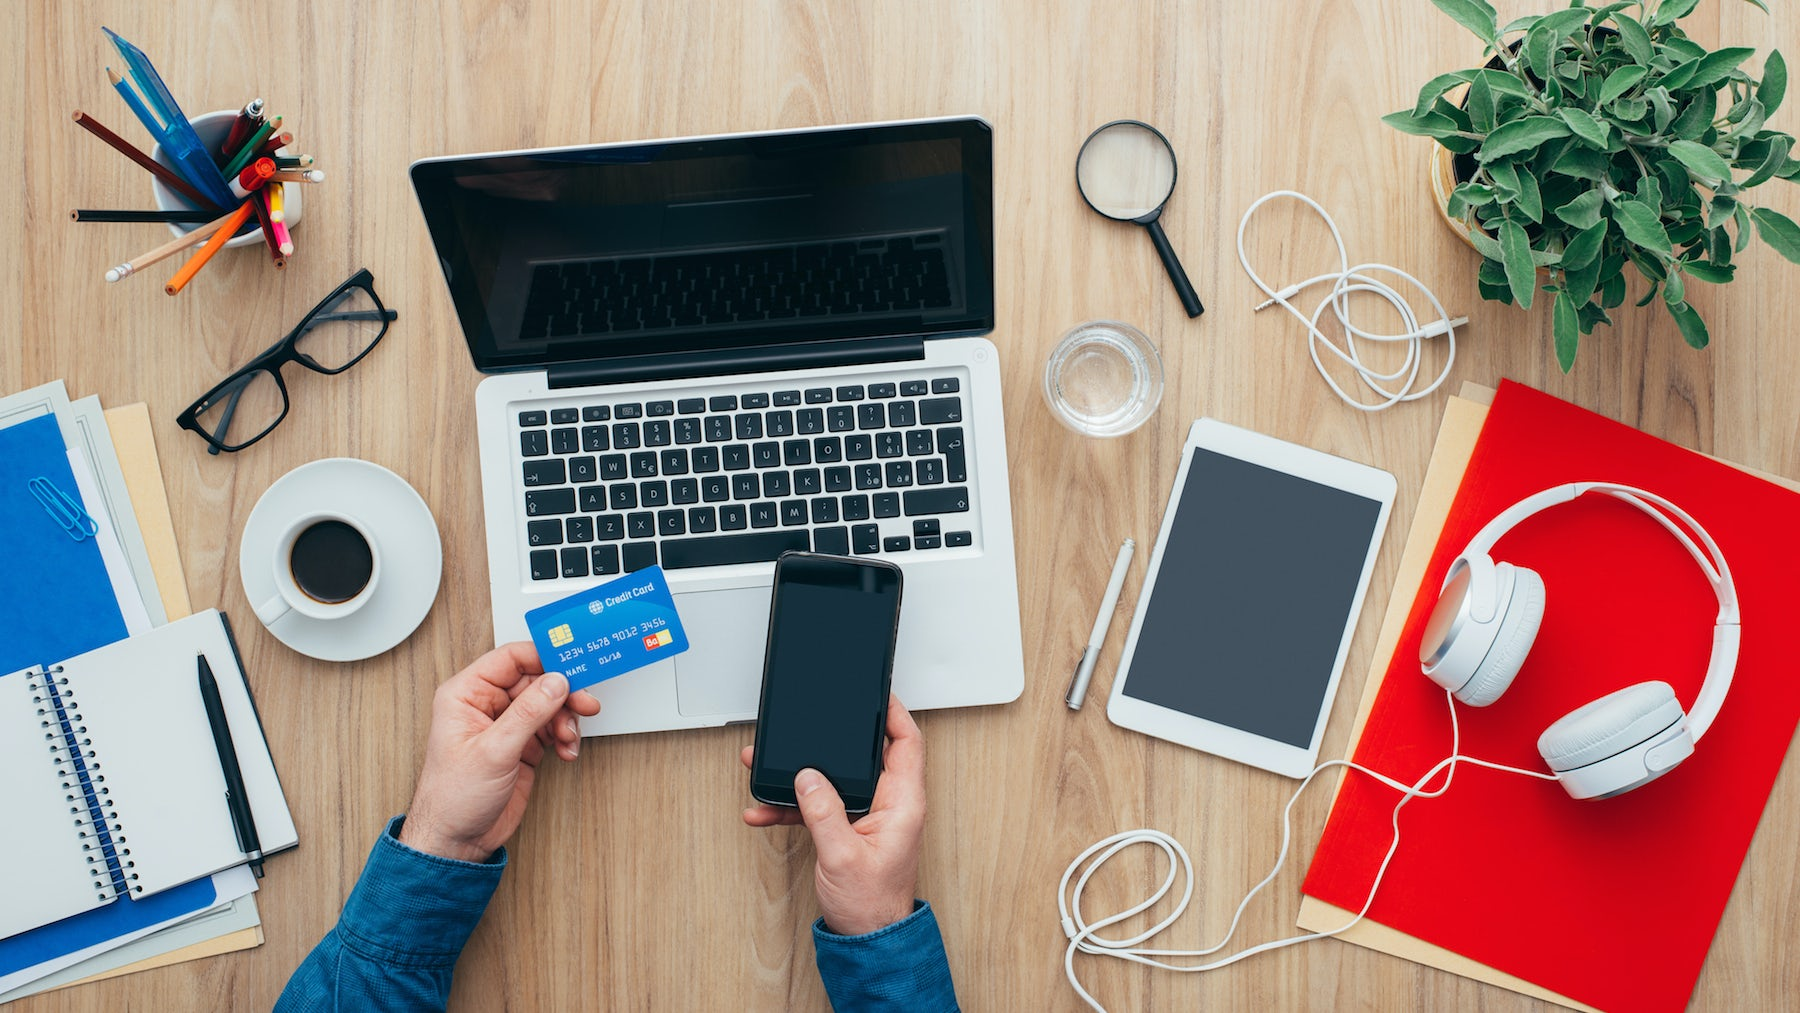 US Online Retail Sales Likely to Surpass $1 Trillion by 2027